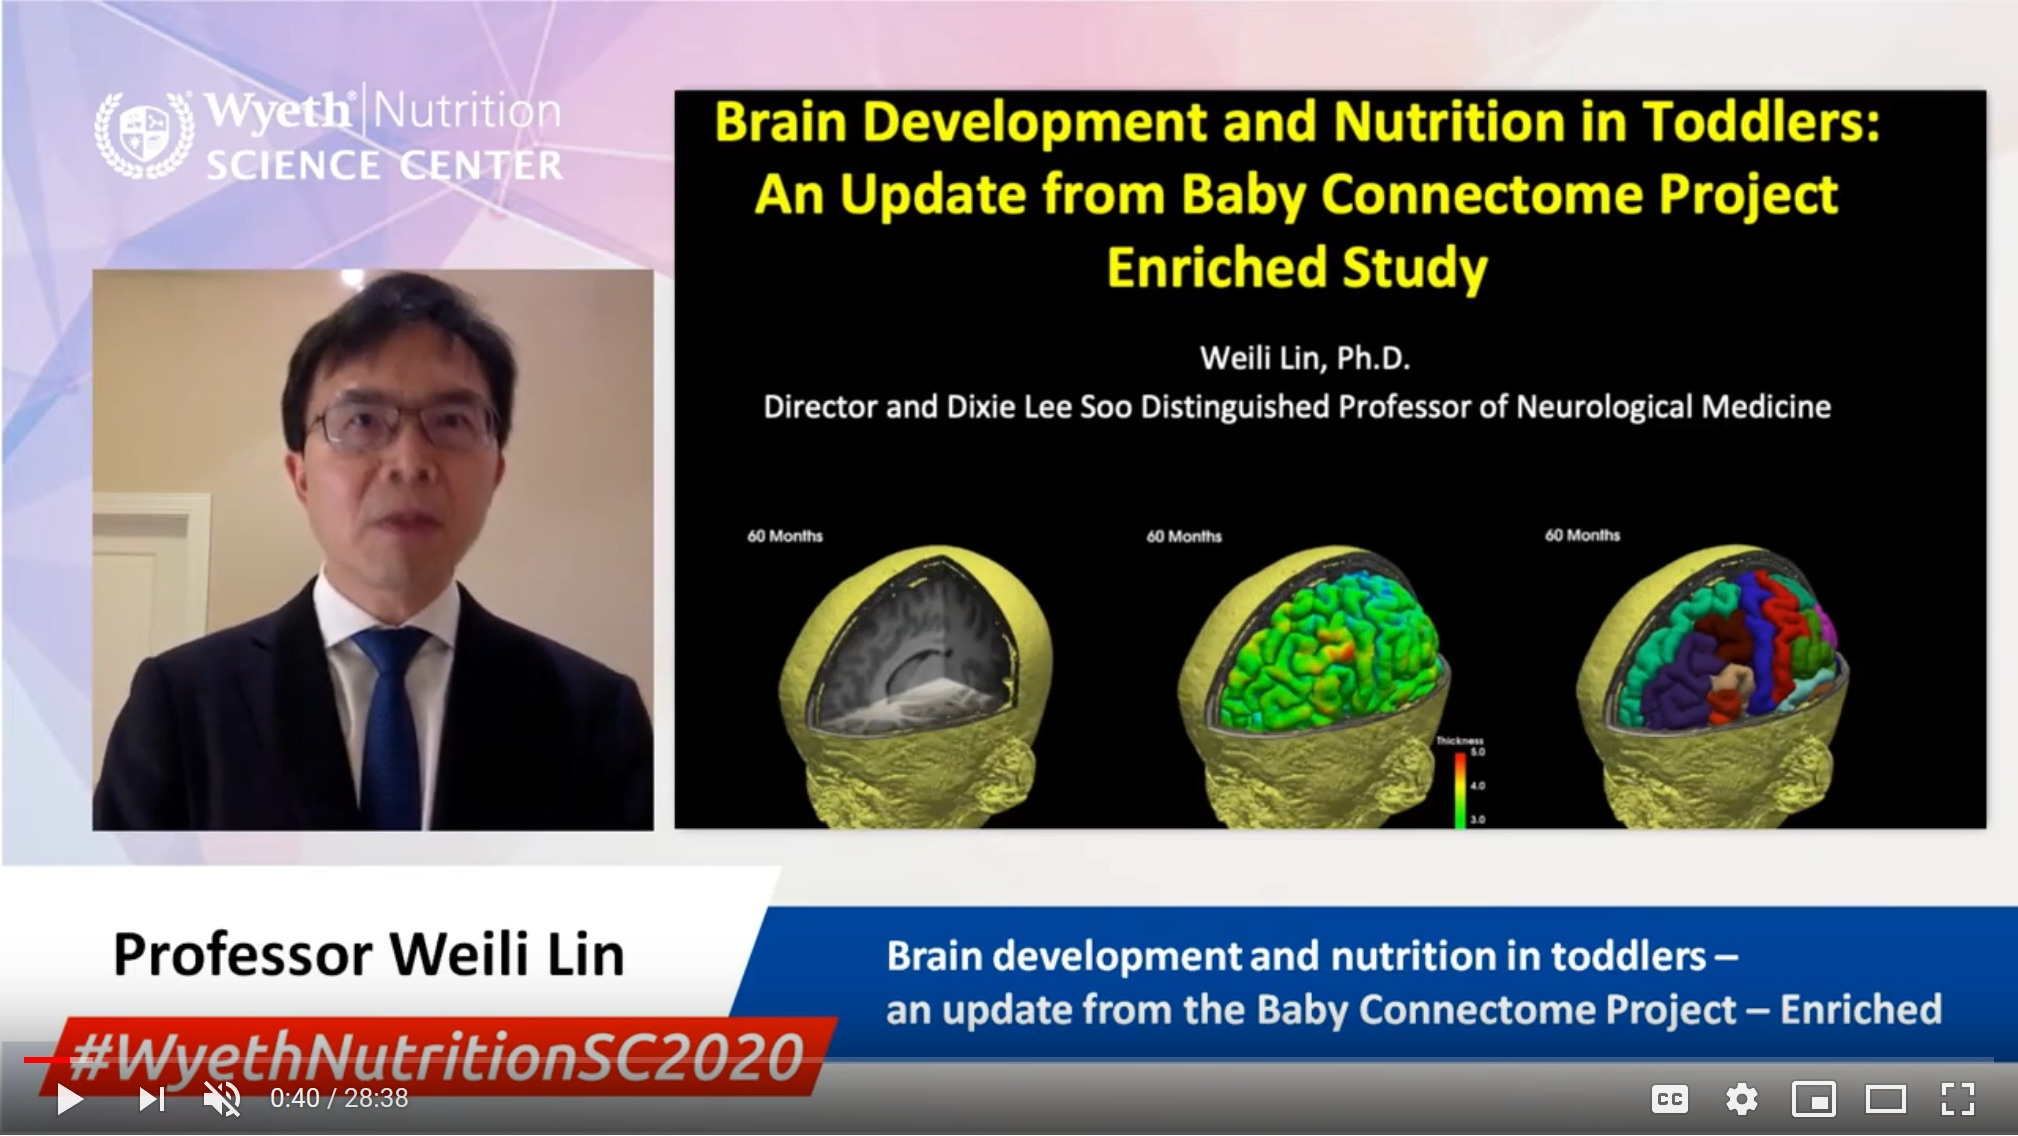 Brain development and nutrition in toddlers–update from the Baby Connectome Project - Prof. Weili Lin